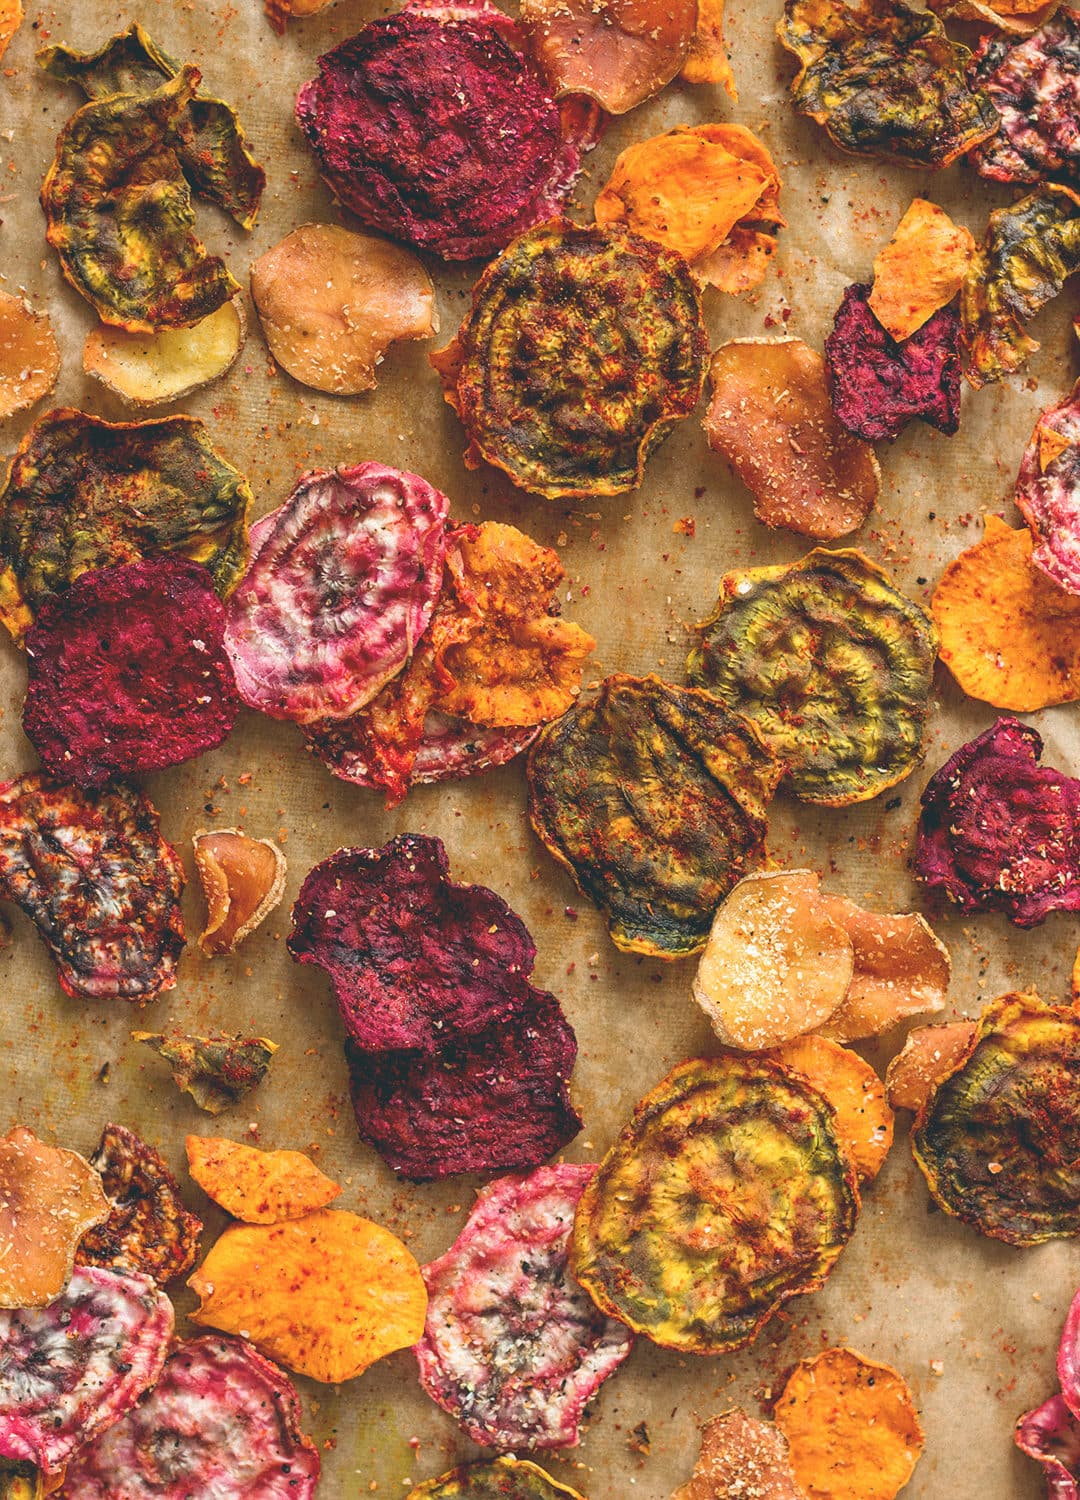 Oven Baked Veggie Chips - red, yellow, and pink beets, sweet potatoes, and some regular potatoes is all you need! Plus your favorite seasoning. You'll absolutely love these. Crunchy & delicious. | thehealthfulideas.com